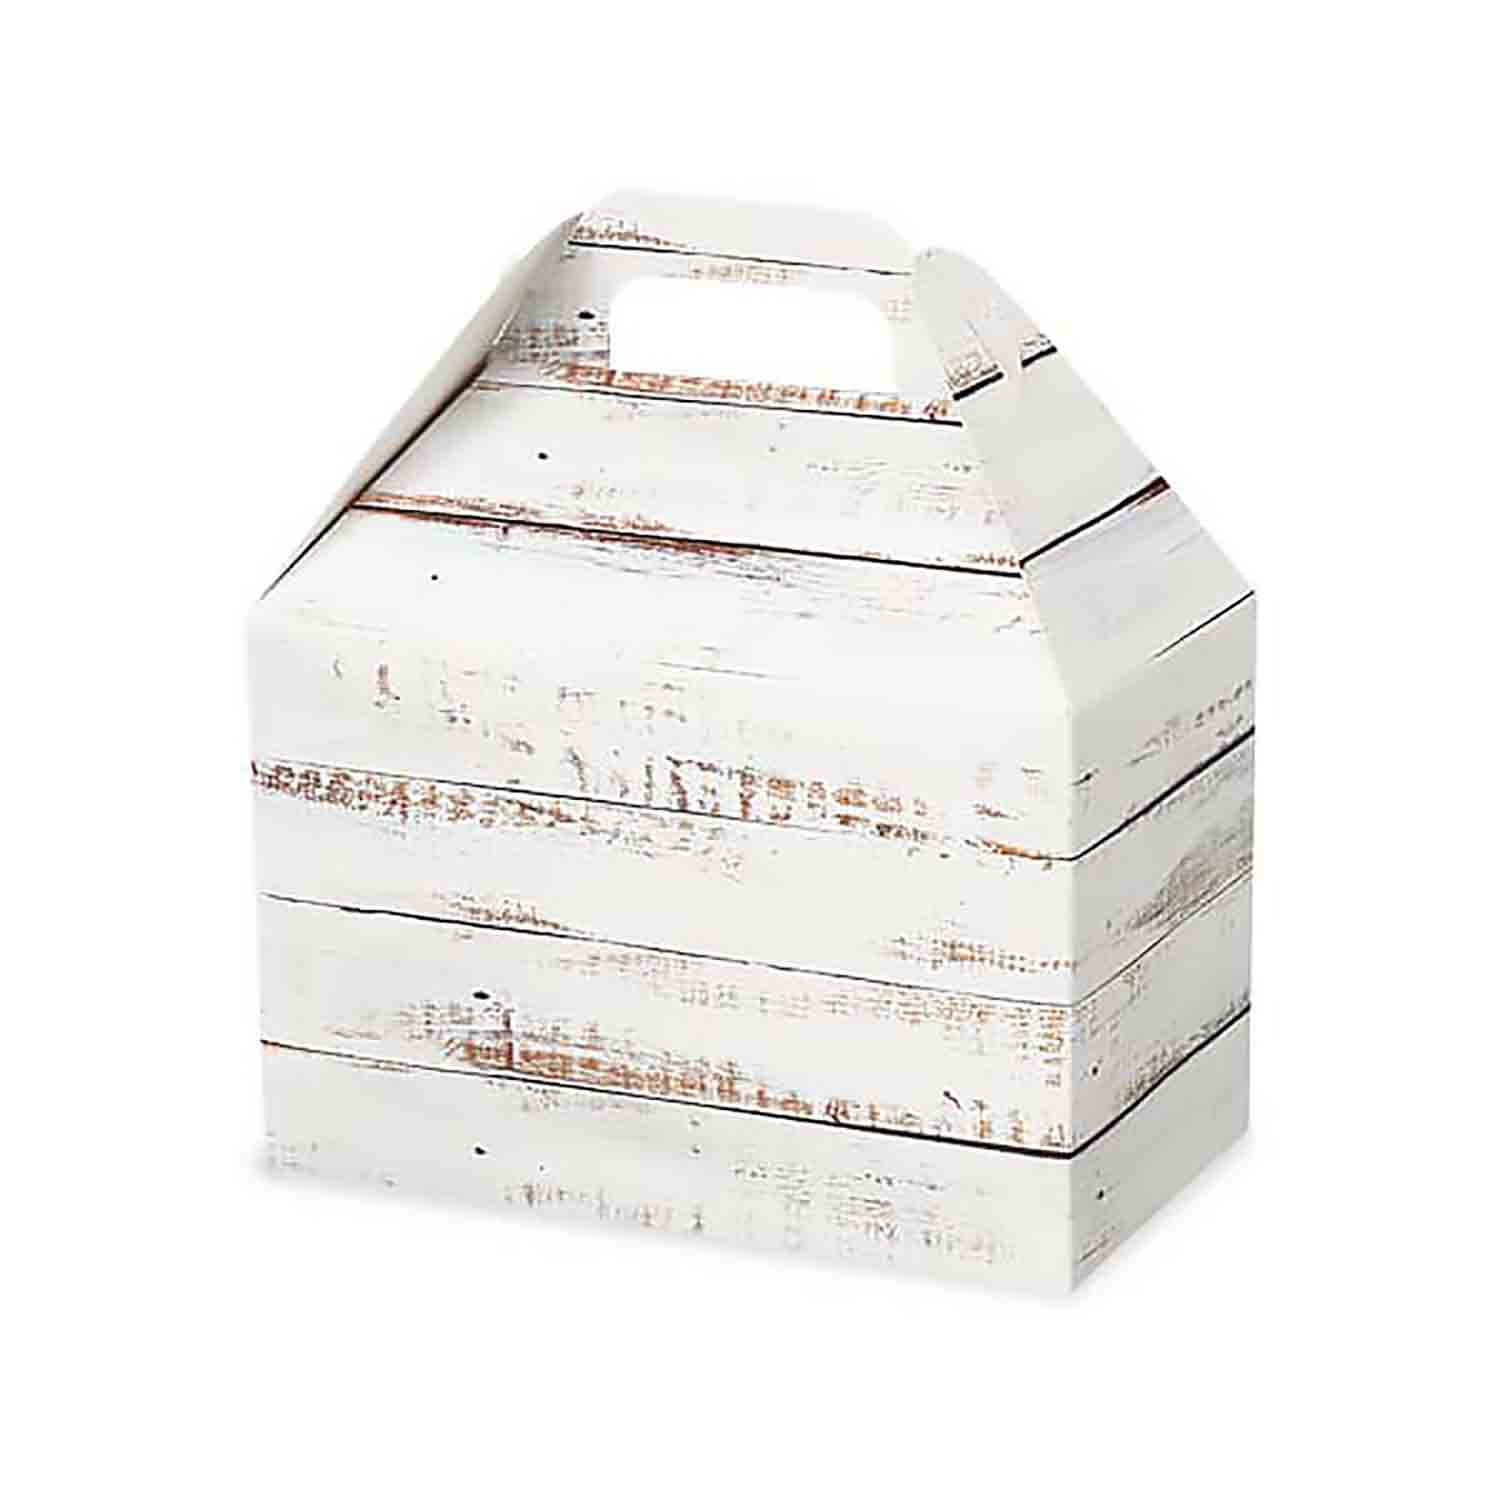 4 lb Distressed Wood Gable Box